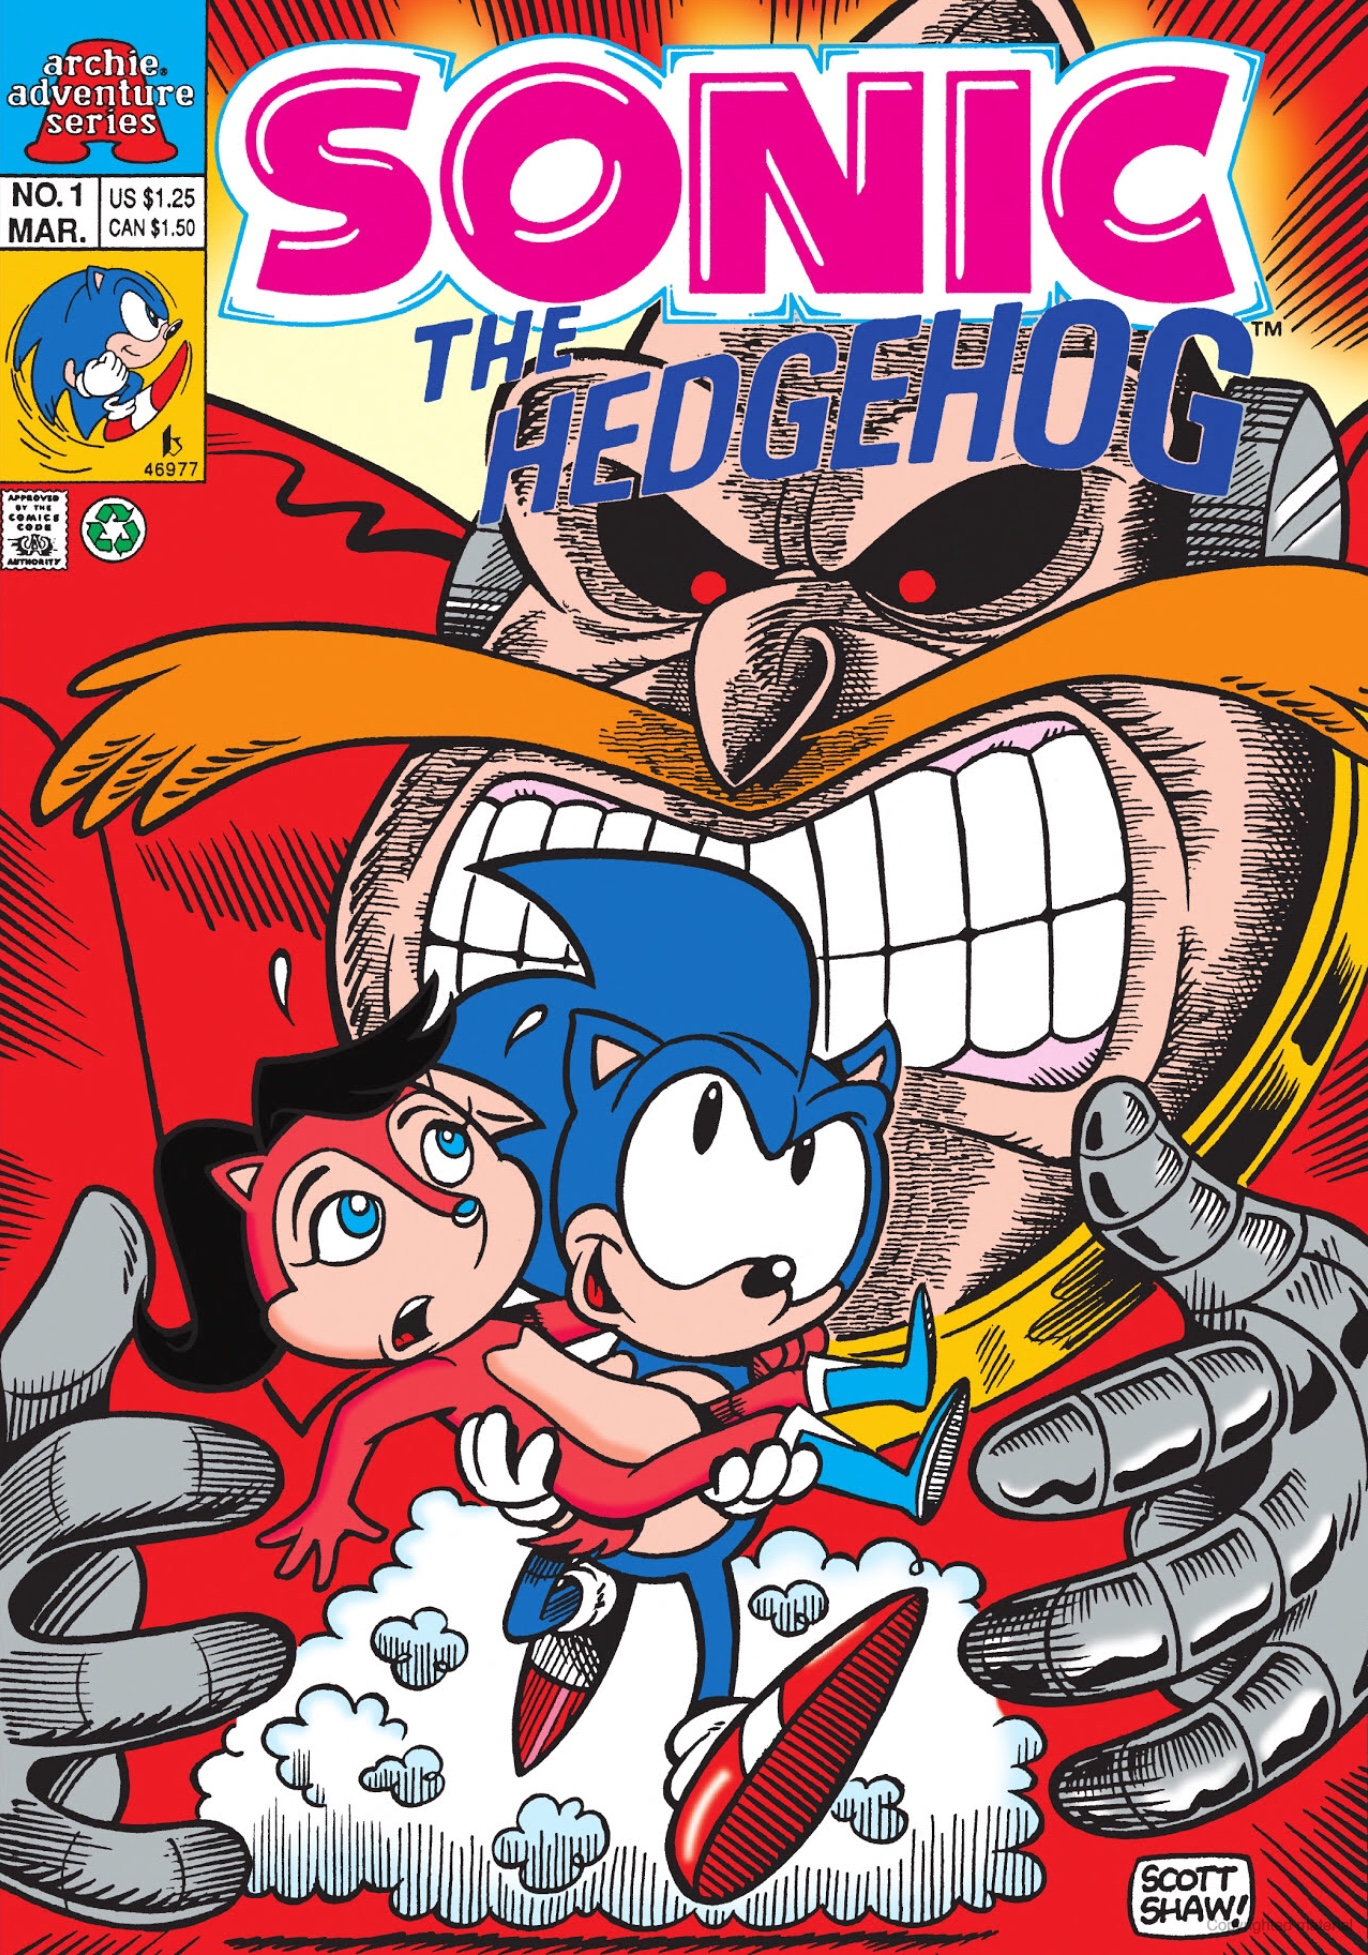 Archie Sonic The Hedgehog Issue 1 Miniseries Sonic News Network Fandom